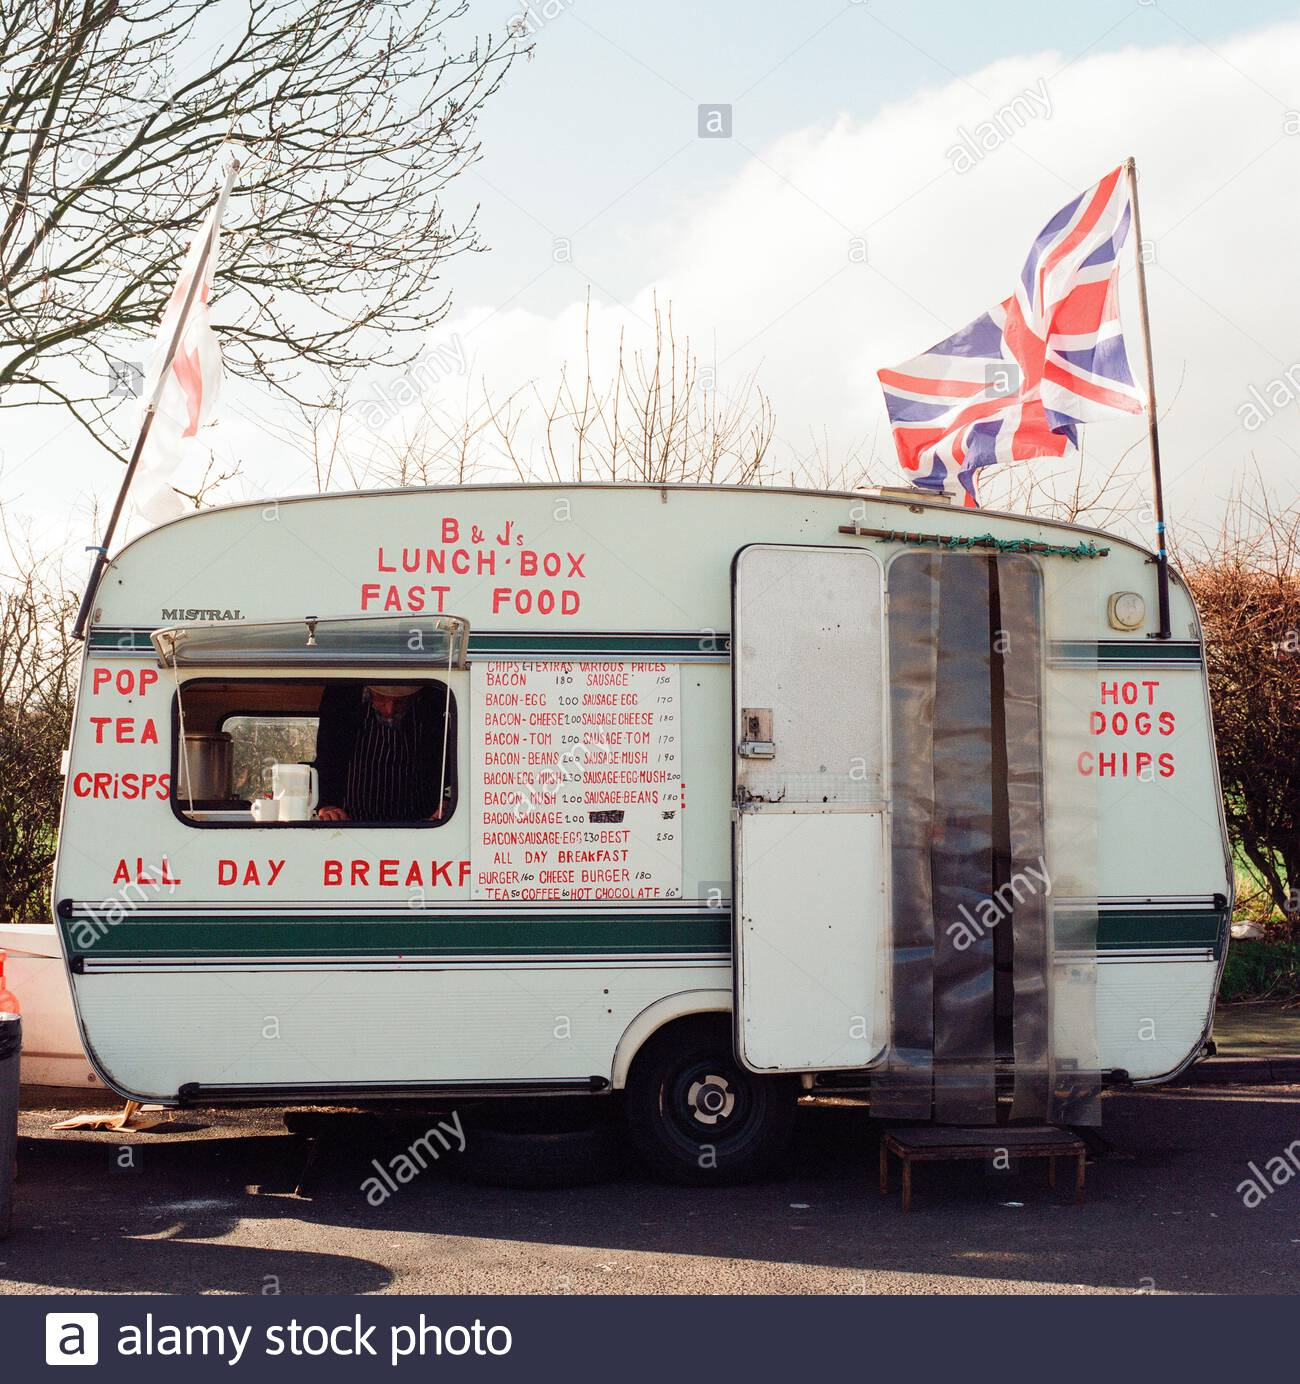 B & J's Lunch Box, a roadside lay-by snack van, on the A442 road in Shropshire, UK. Stock Photo